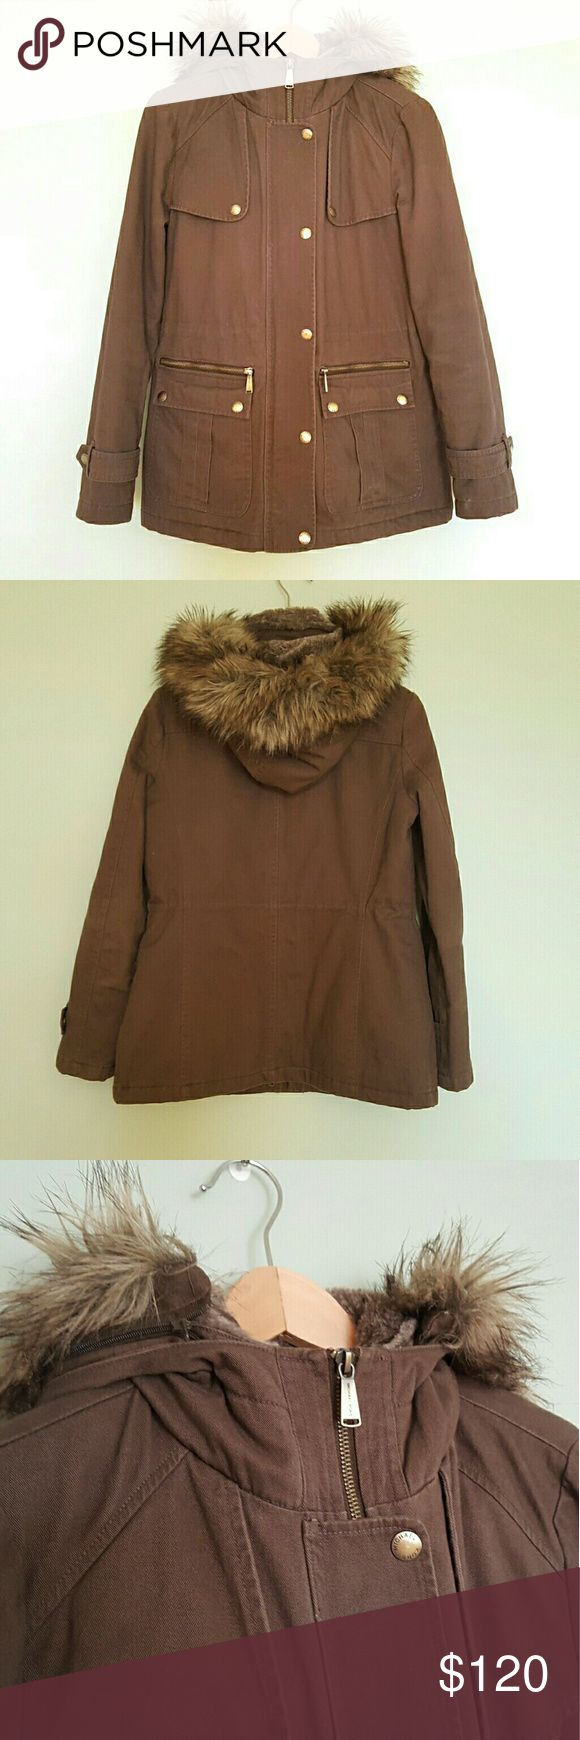 Michael Kors Dark Olive Faux Fur Hooded Parka S This awesome parka comes in a dark brownish olive color and features a removable faux fur trimmed hood. It was only worn a few times and has since been dry cleaned, so it is in very good pre-owned condition with only minor signs of wear. Size small. MICHAEL Michael Kors Jackets & Coats Utility Jackets